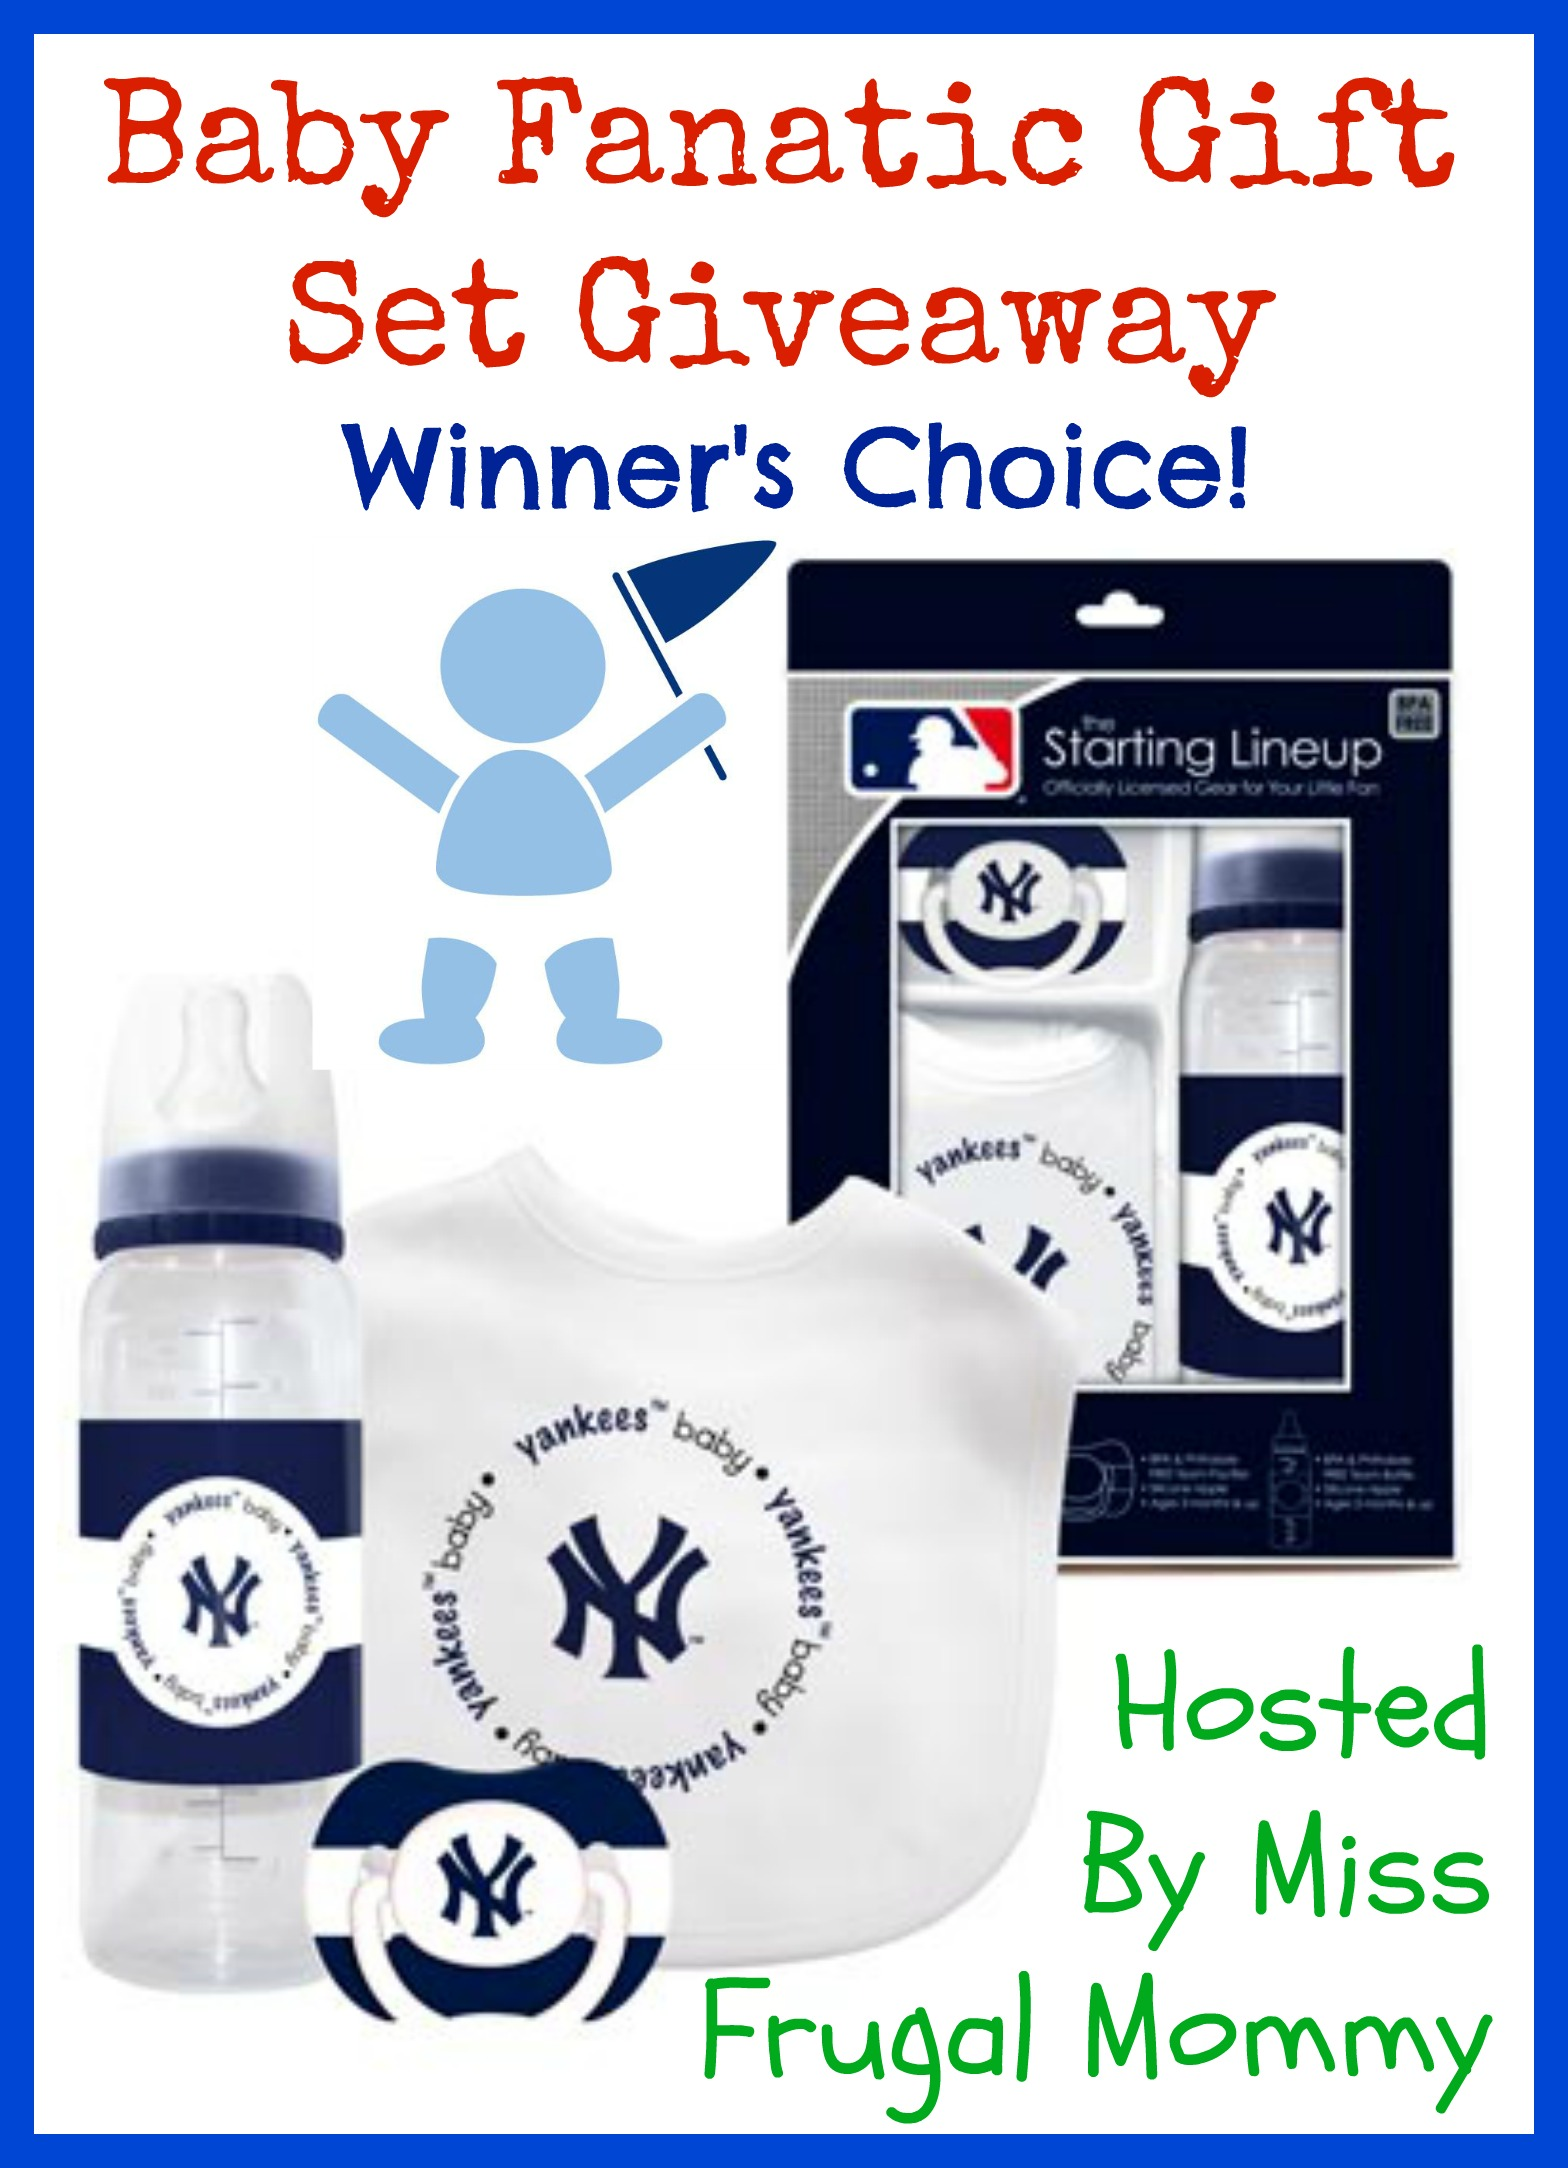 Baby Fanatic Baby Essentials Gift Set Giveaway